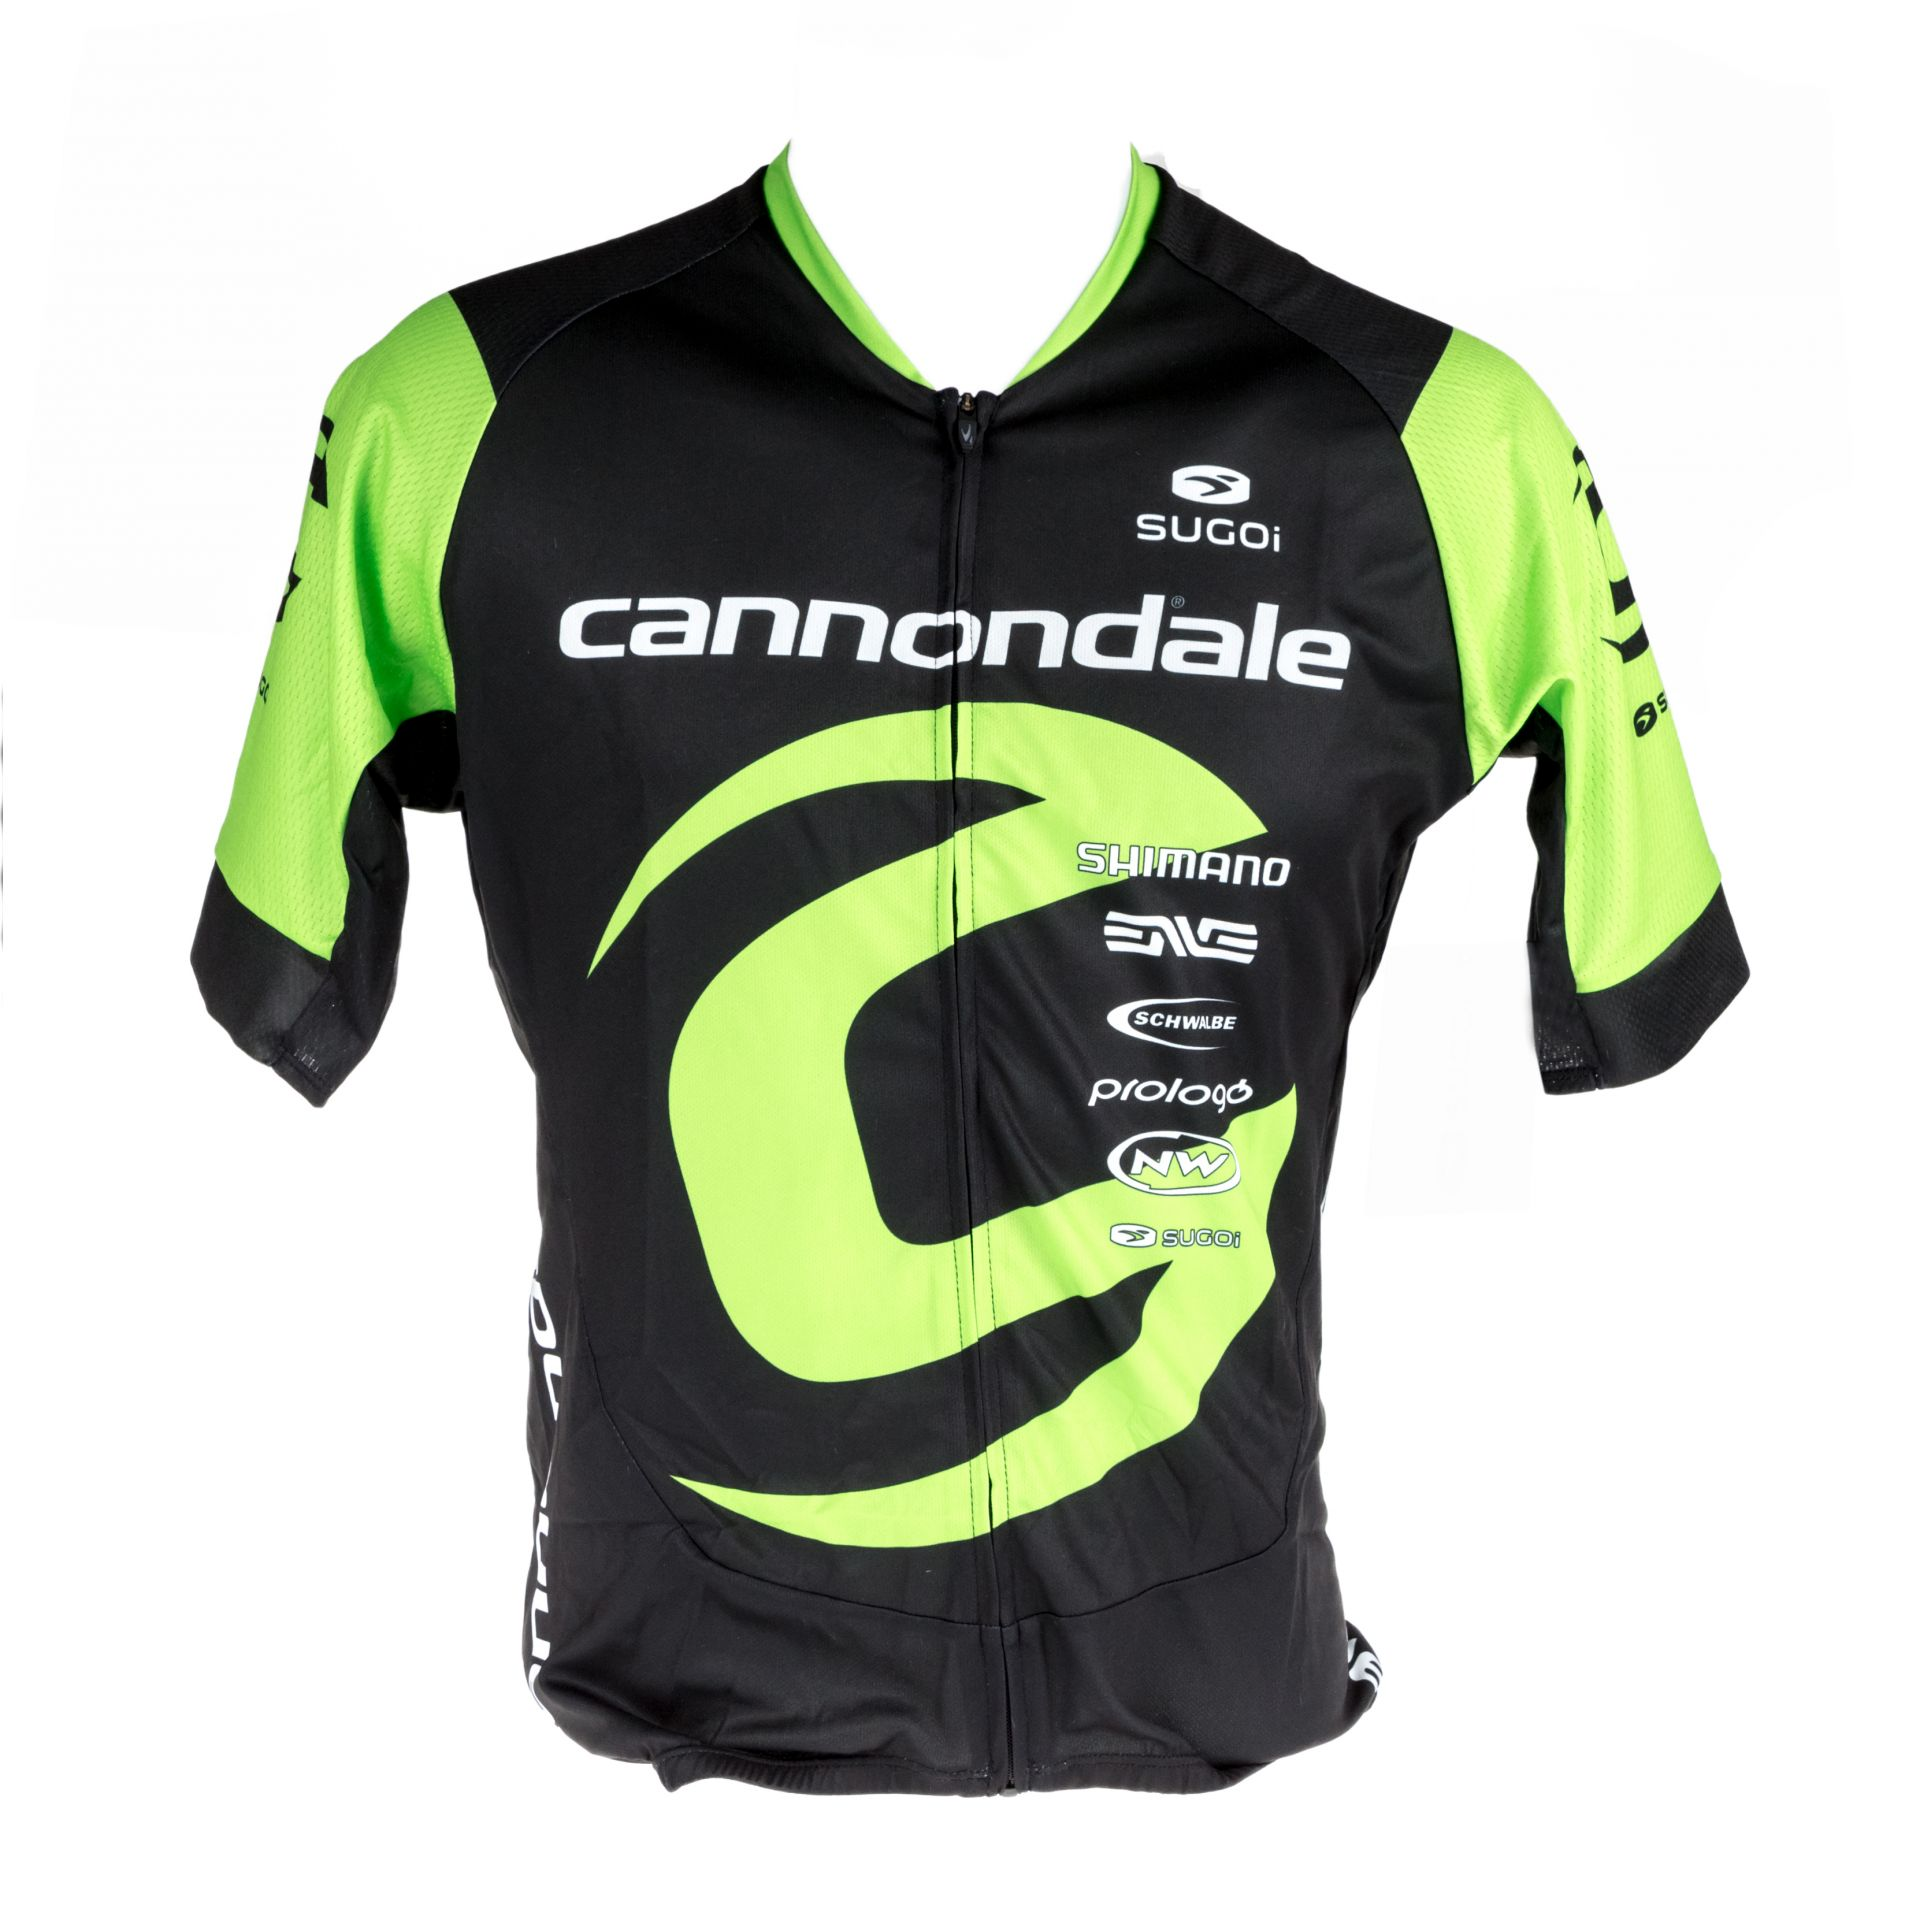 Maillot Cannondale CFR Training by Sugoi Noir/Vert - M